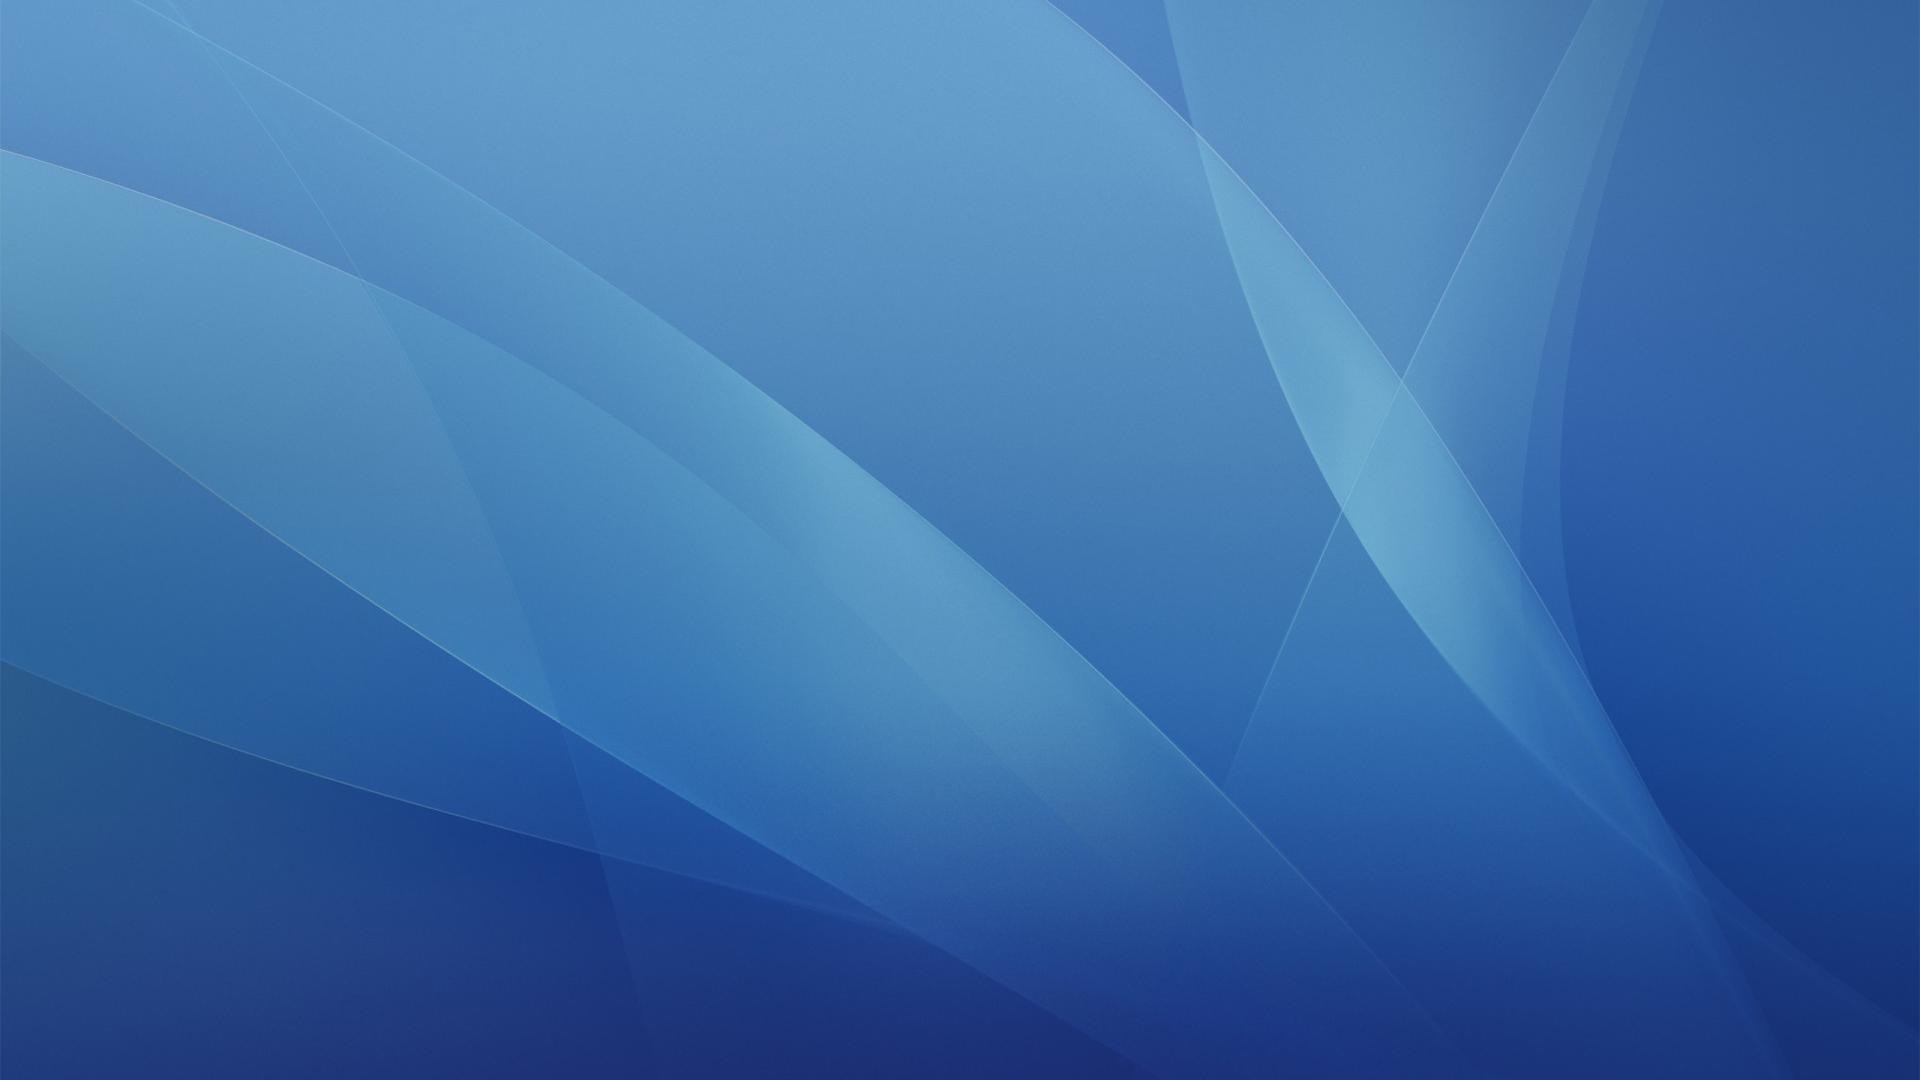 1920x1080  abstract Blue texture wallpaper background